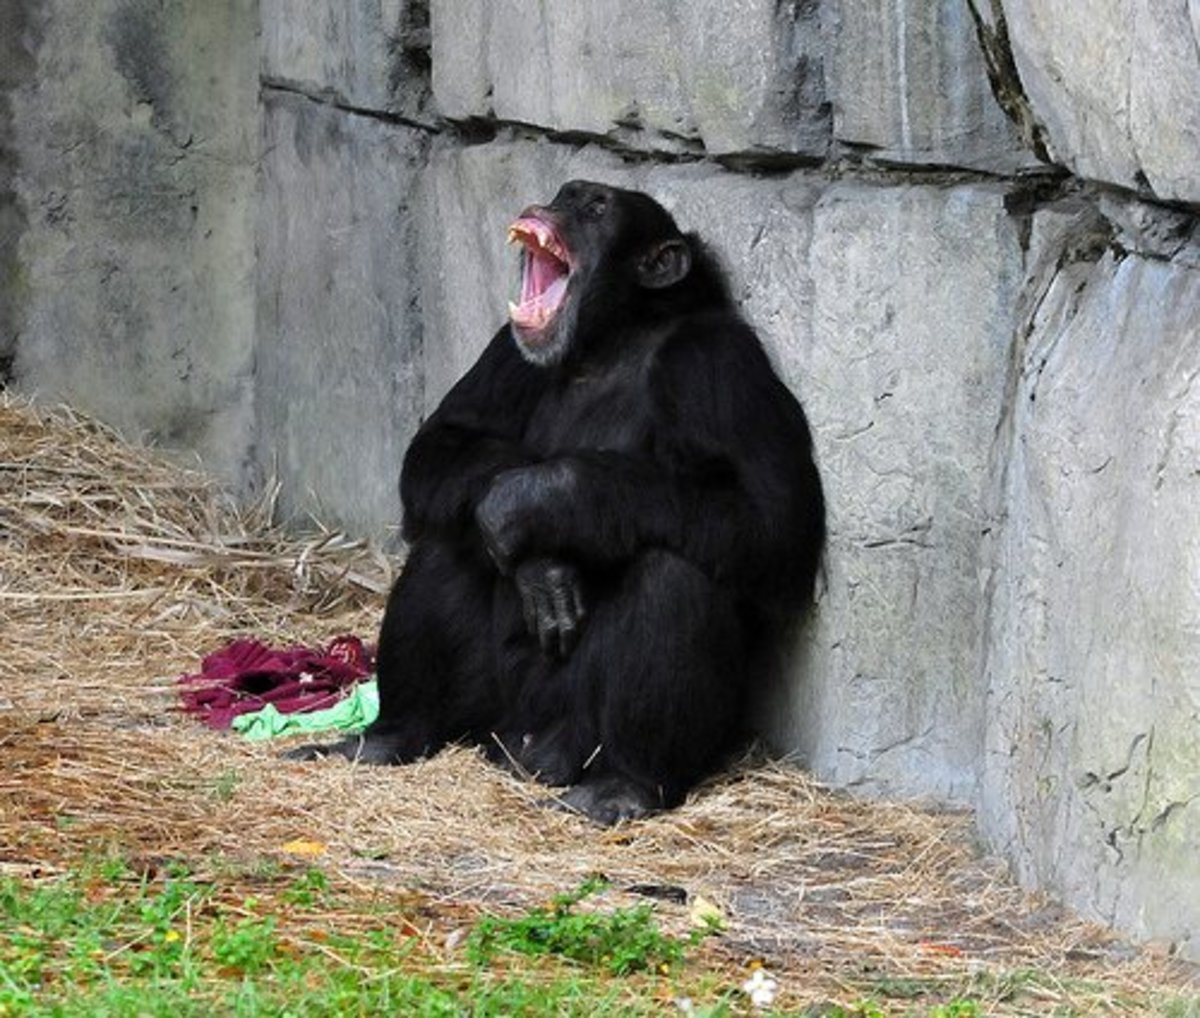 When a chimpanzee laughs, it is a sign of stress or aggression.